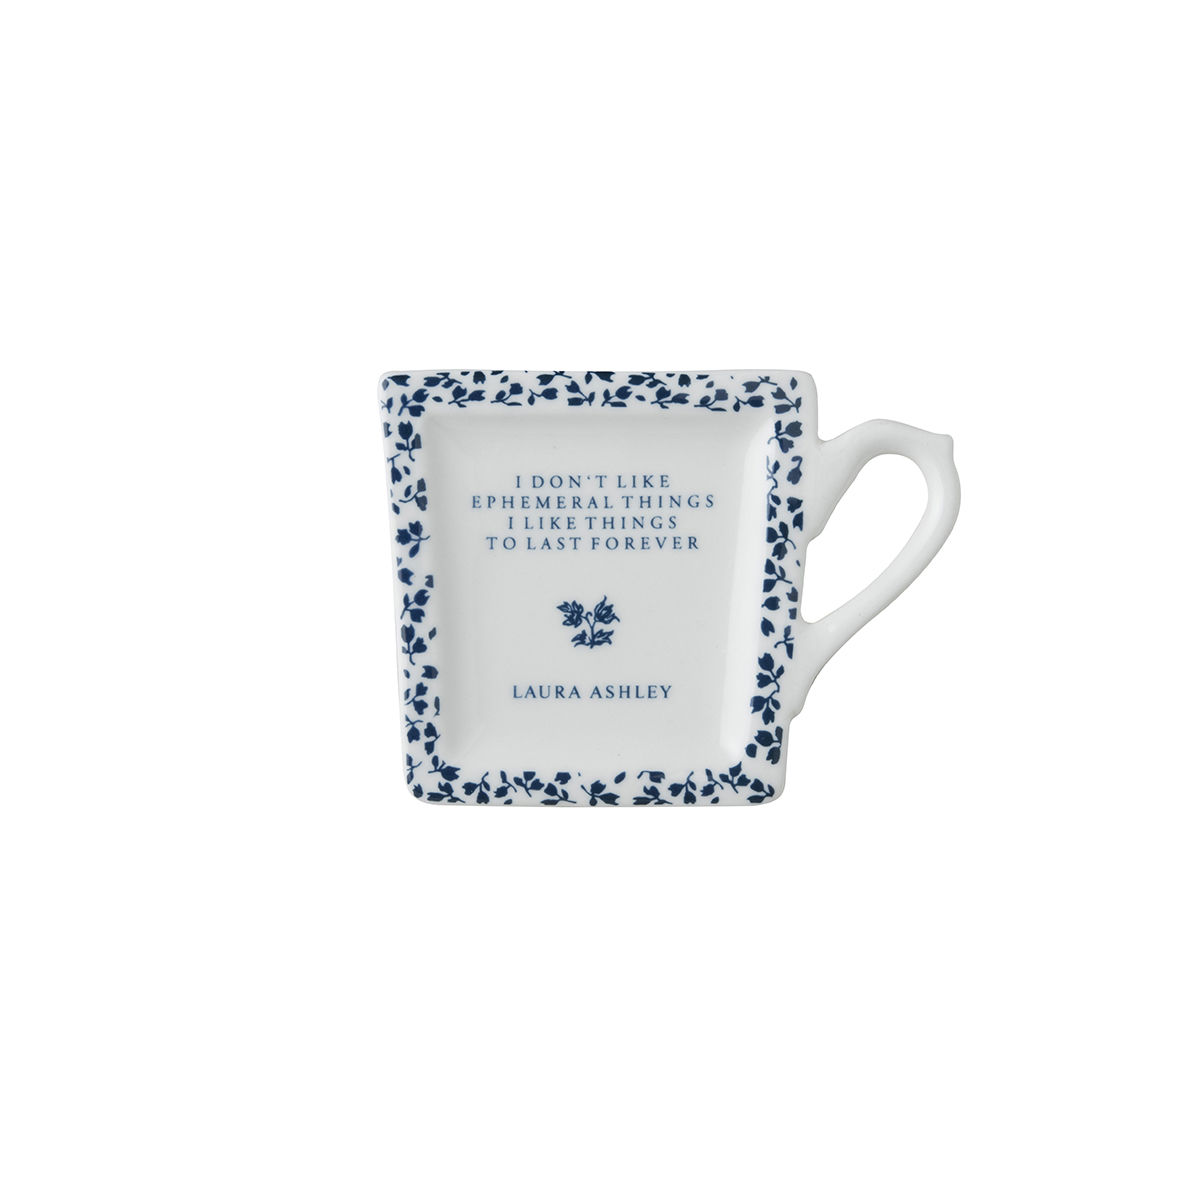 Laura Ashley Tea Tip Floris - product images  of